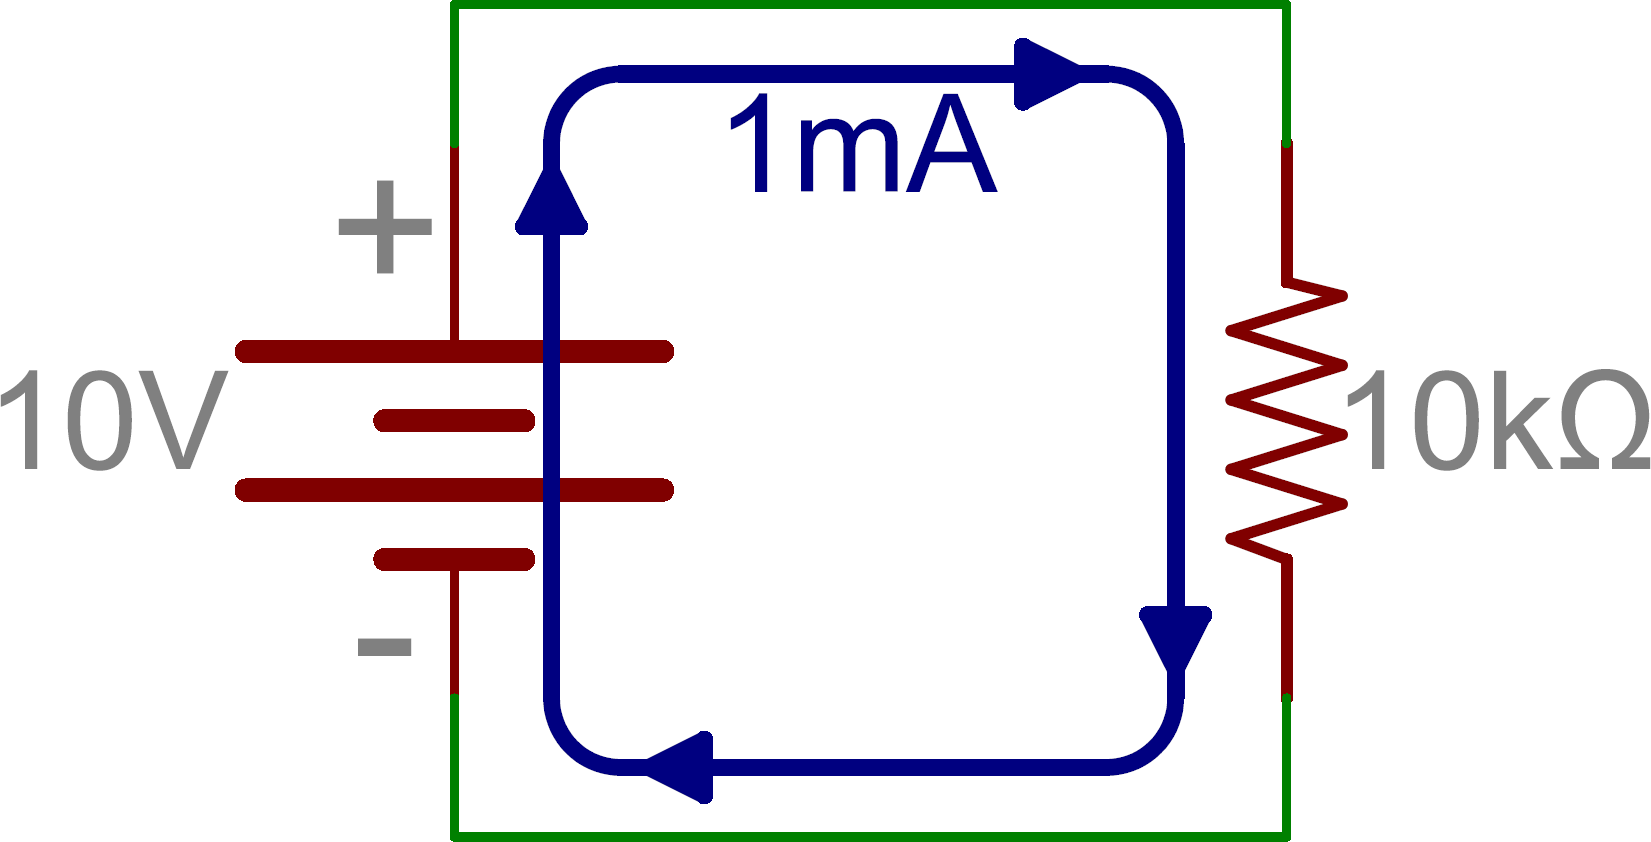 Series And Parallel Circuits Wiring In Leds Schematic Single Resistor With Battery